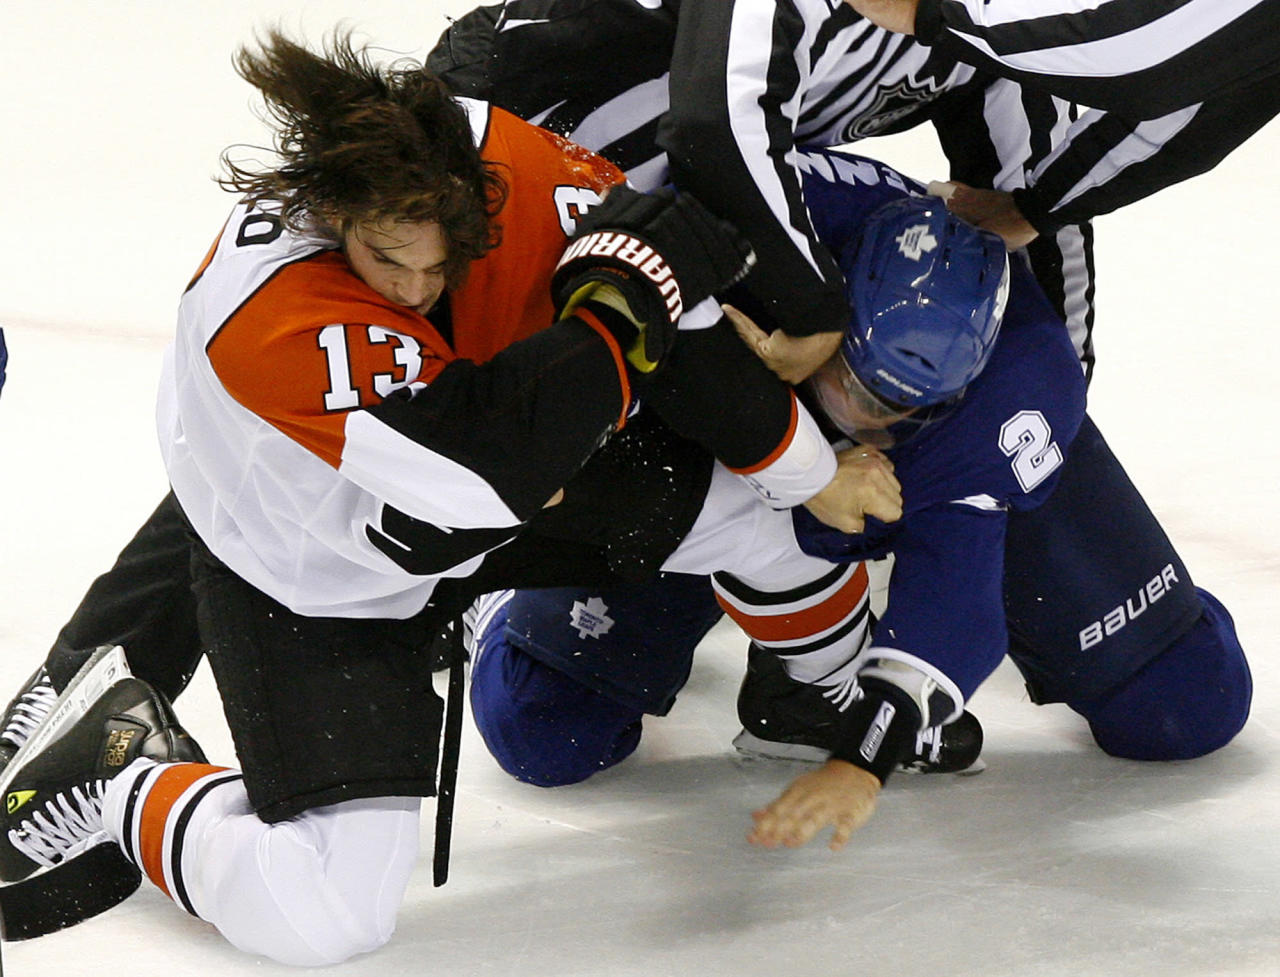 Dan Carcillo joins players in NHL concussion lawsuit